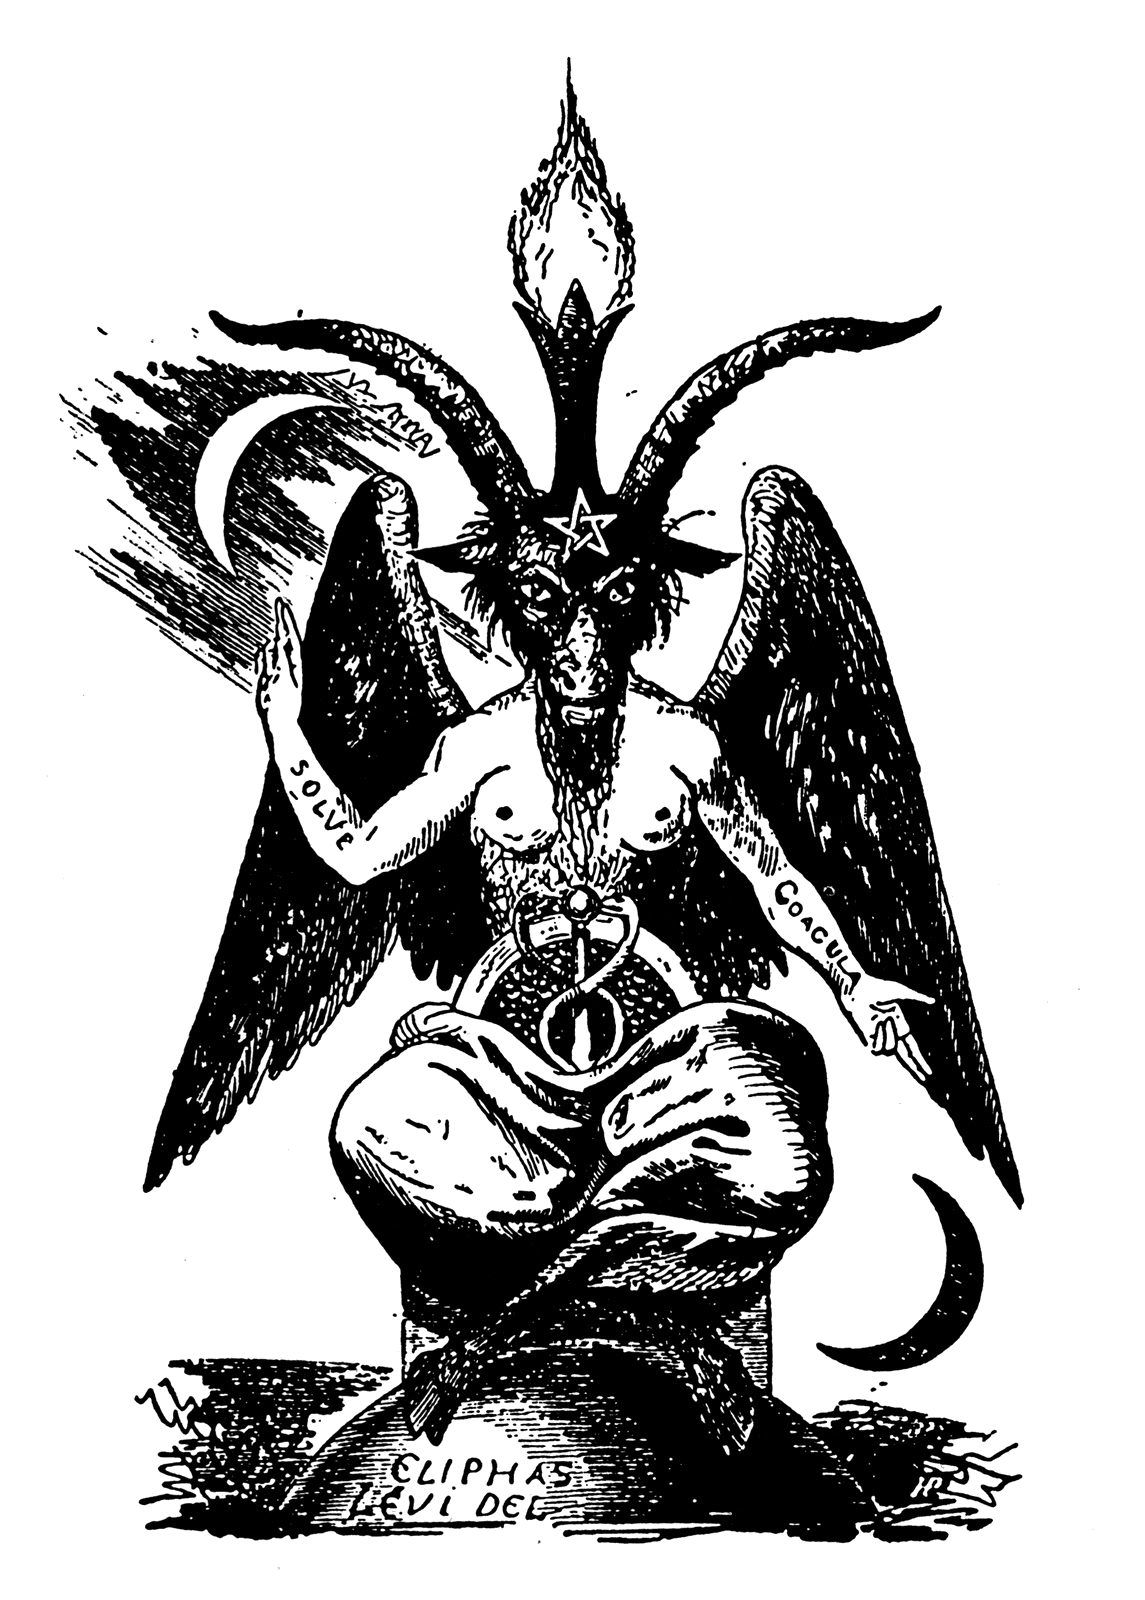 Diablo drawing. Baphomet random stuff i